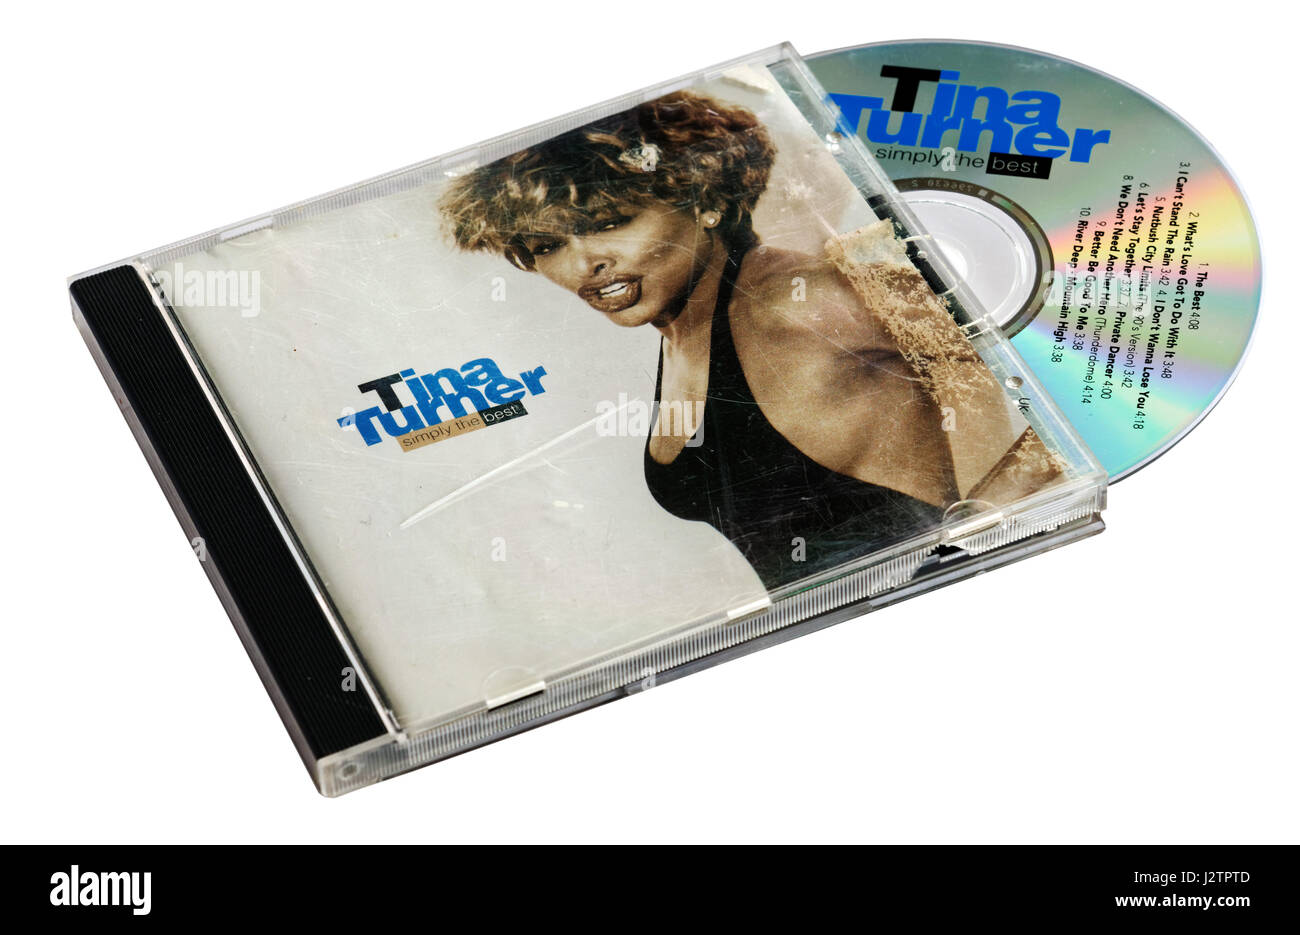 Simply The Best by Tina Turner - Stock Image